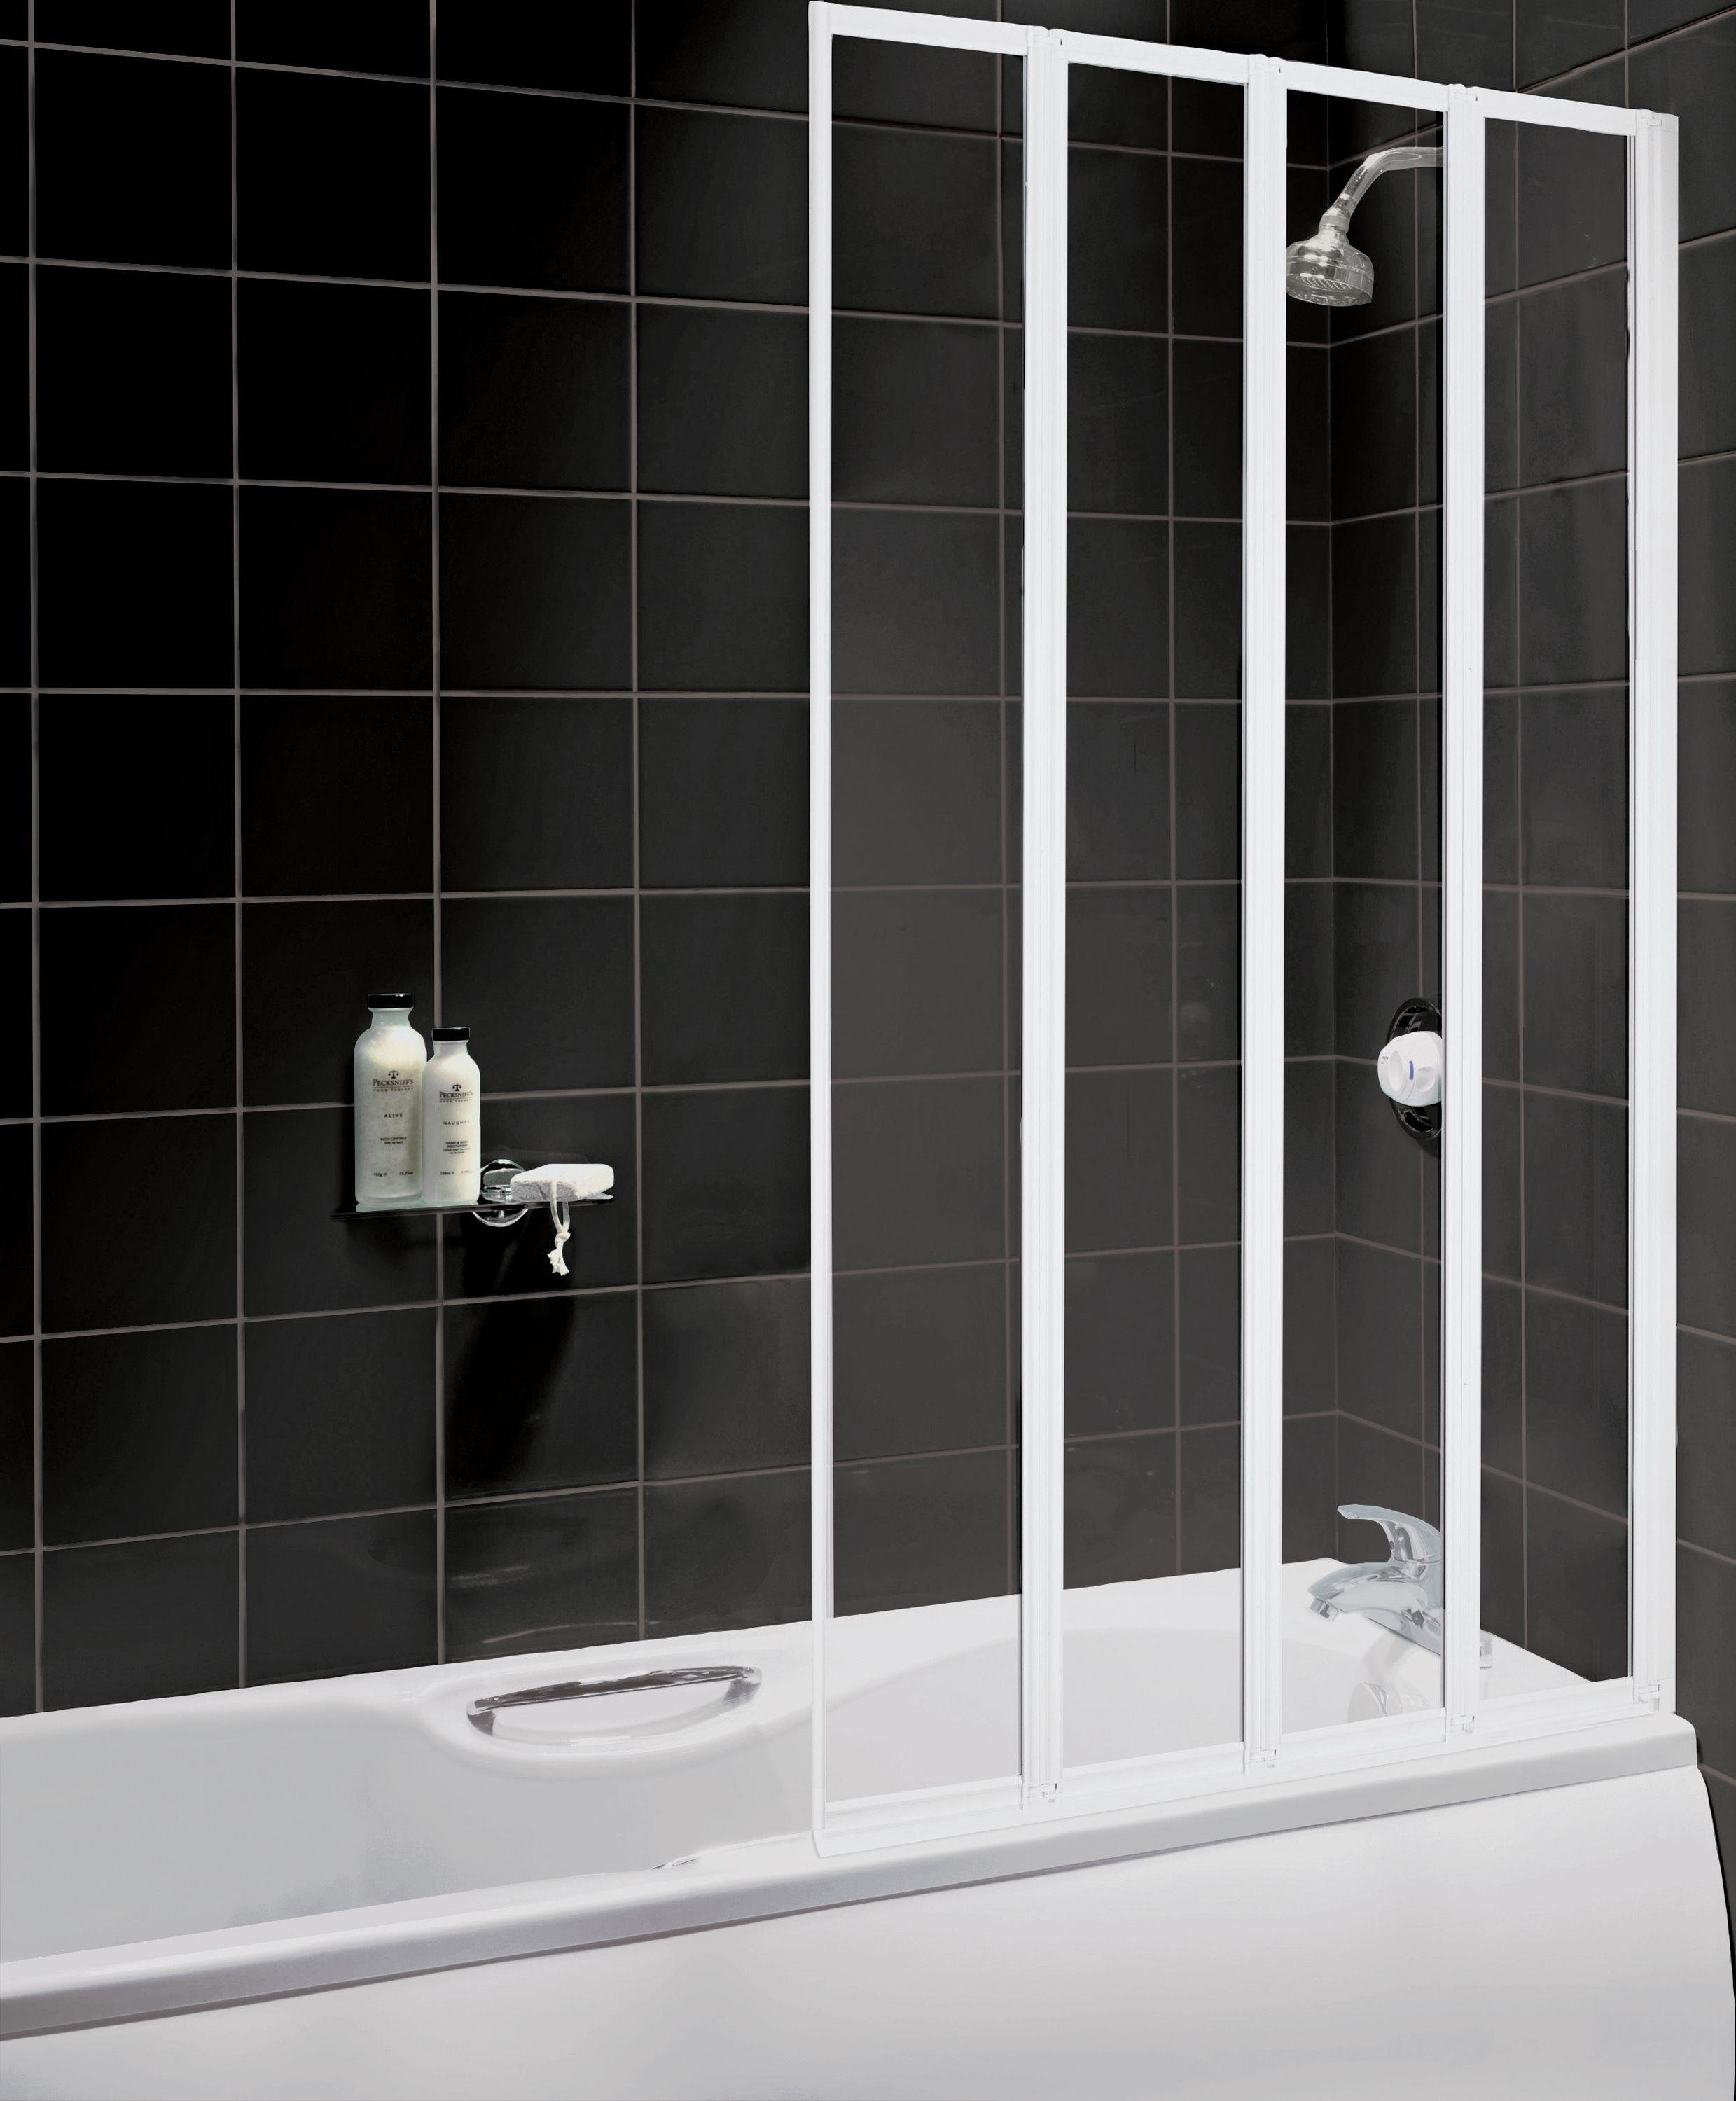 Image of Aqualux Fully Framed White 4 Fold Bath & Shower Screen